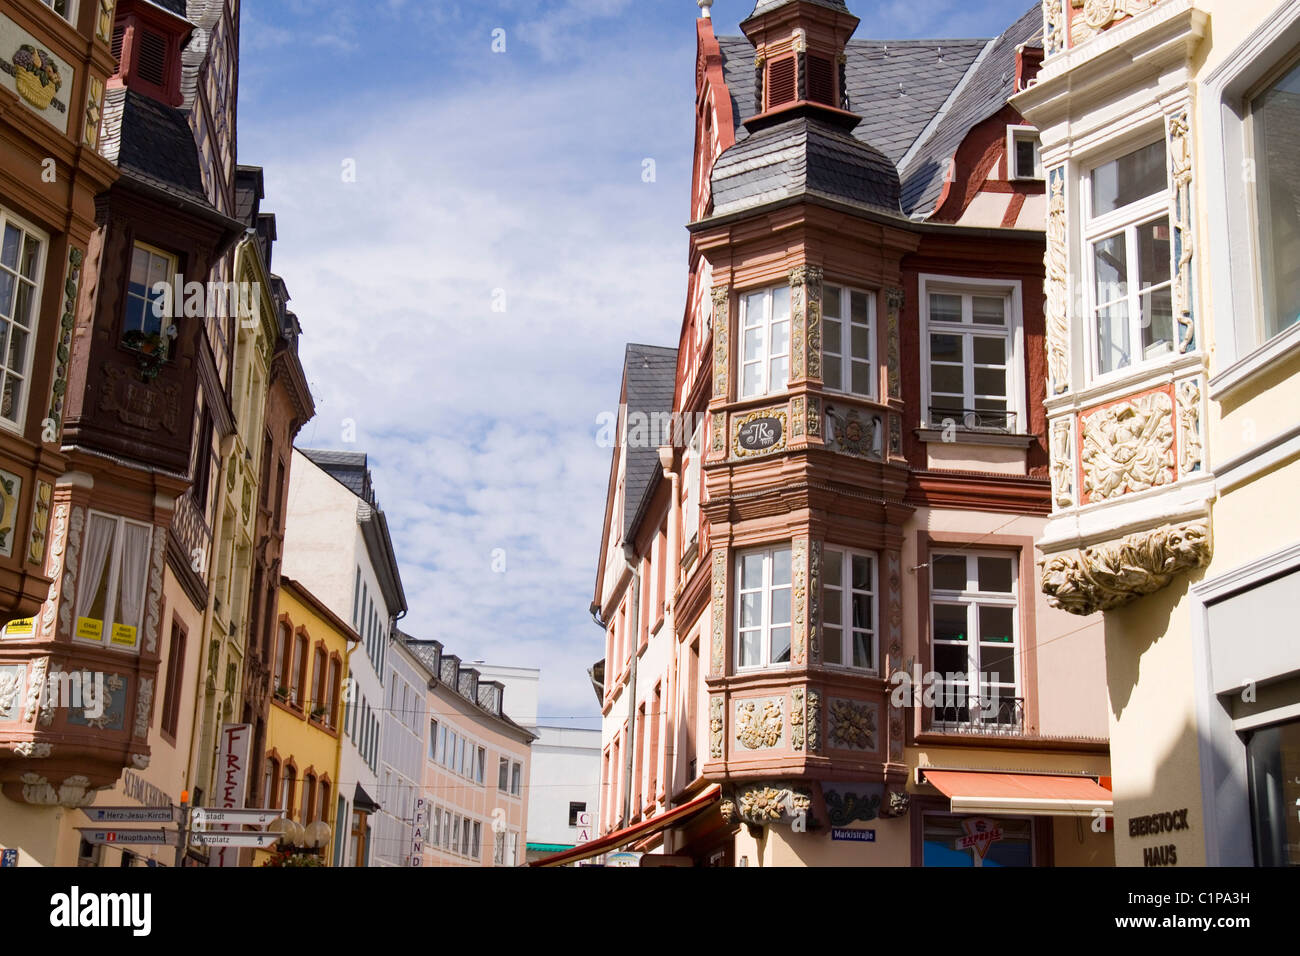 Germany, Koblenz, building facades - Stock Image